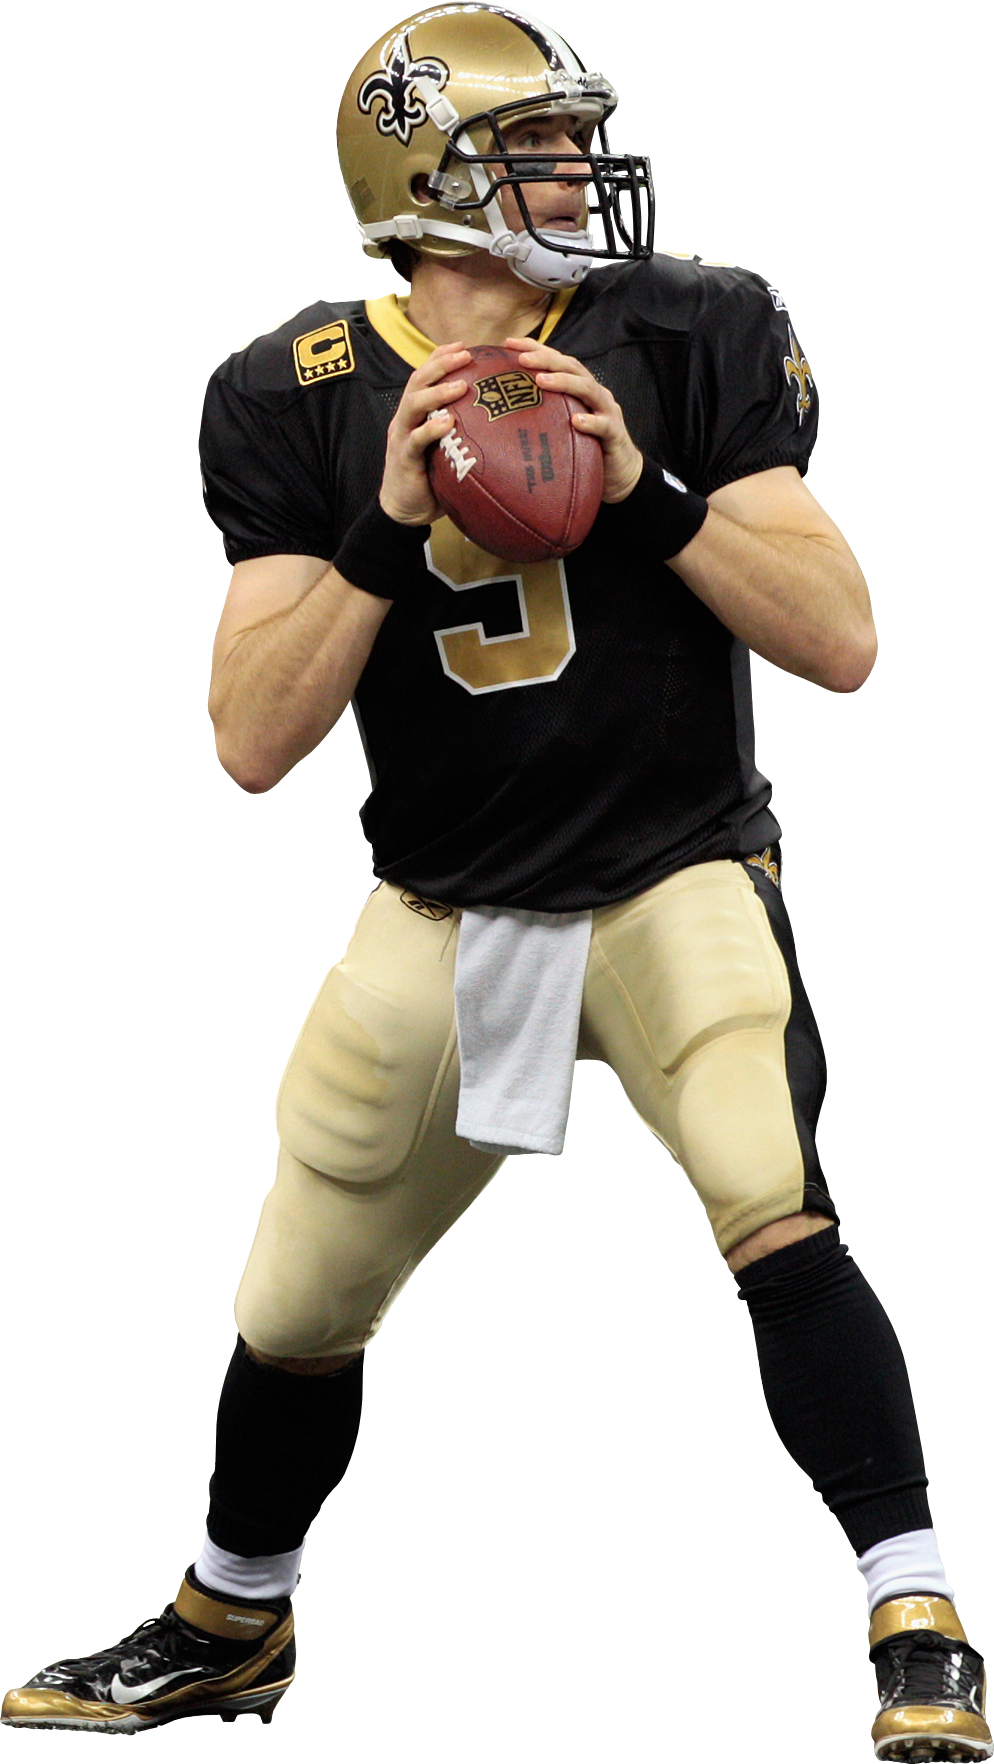 Drew Brees Png (106+ images in Collection) Page 1.